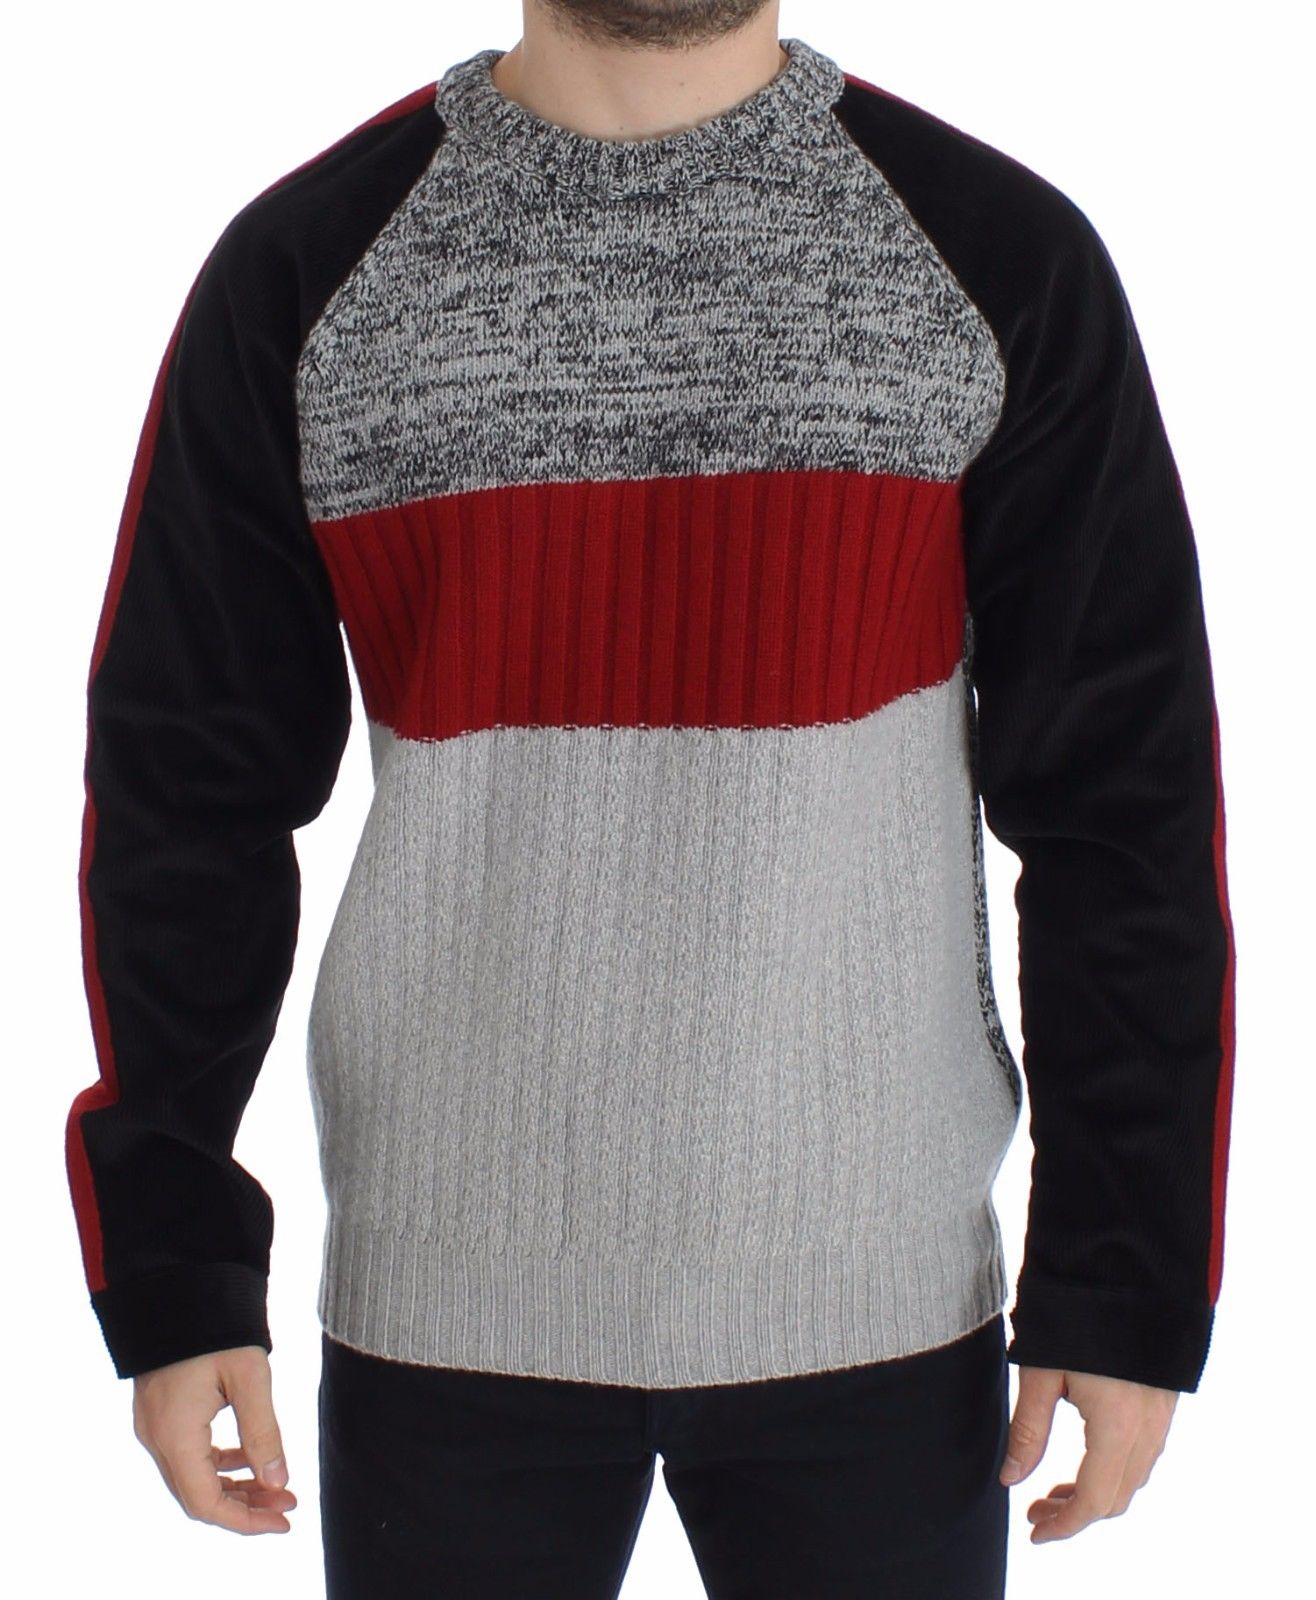 Dolce & Gabbana Men's Knitted Wool Cashmere Crewneck Sweater Pullover Multicolor SIG14010 - IT44 | XS